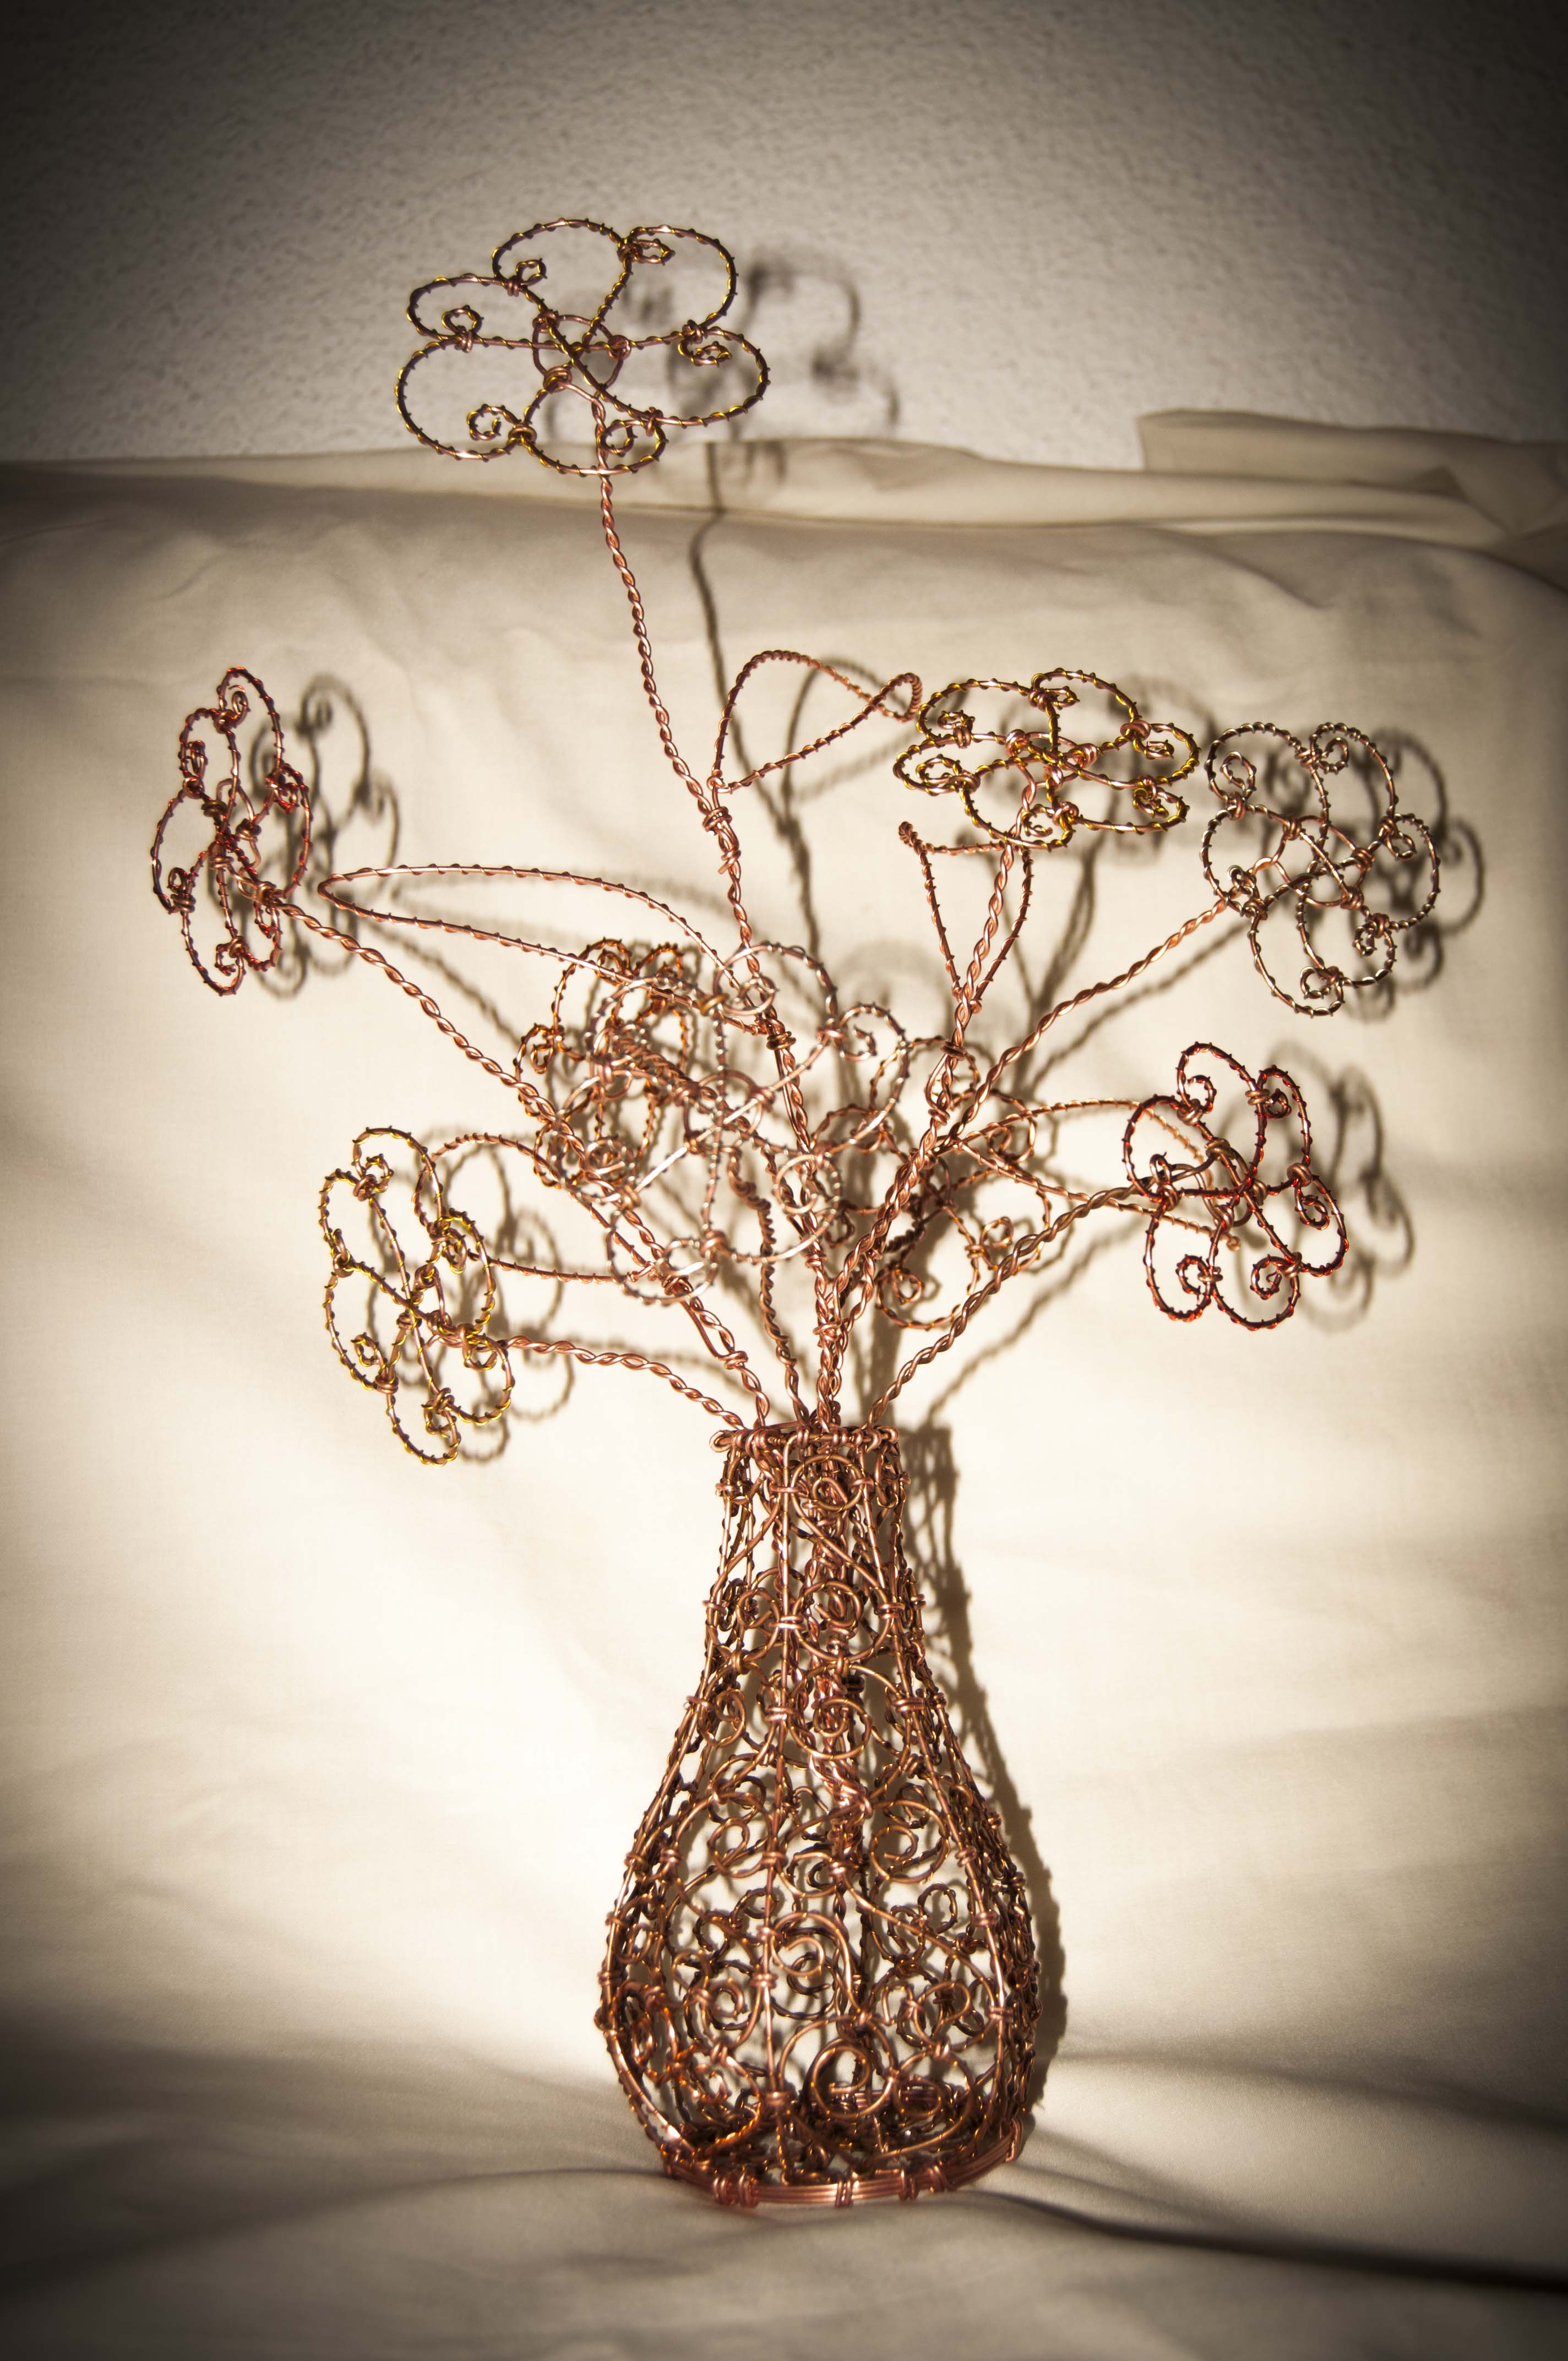 Wire Art Flower Vase Copper Wire Wire Art By Robytoxic On Deviantart